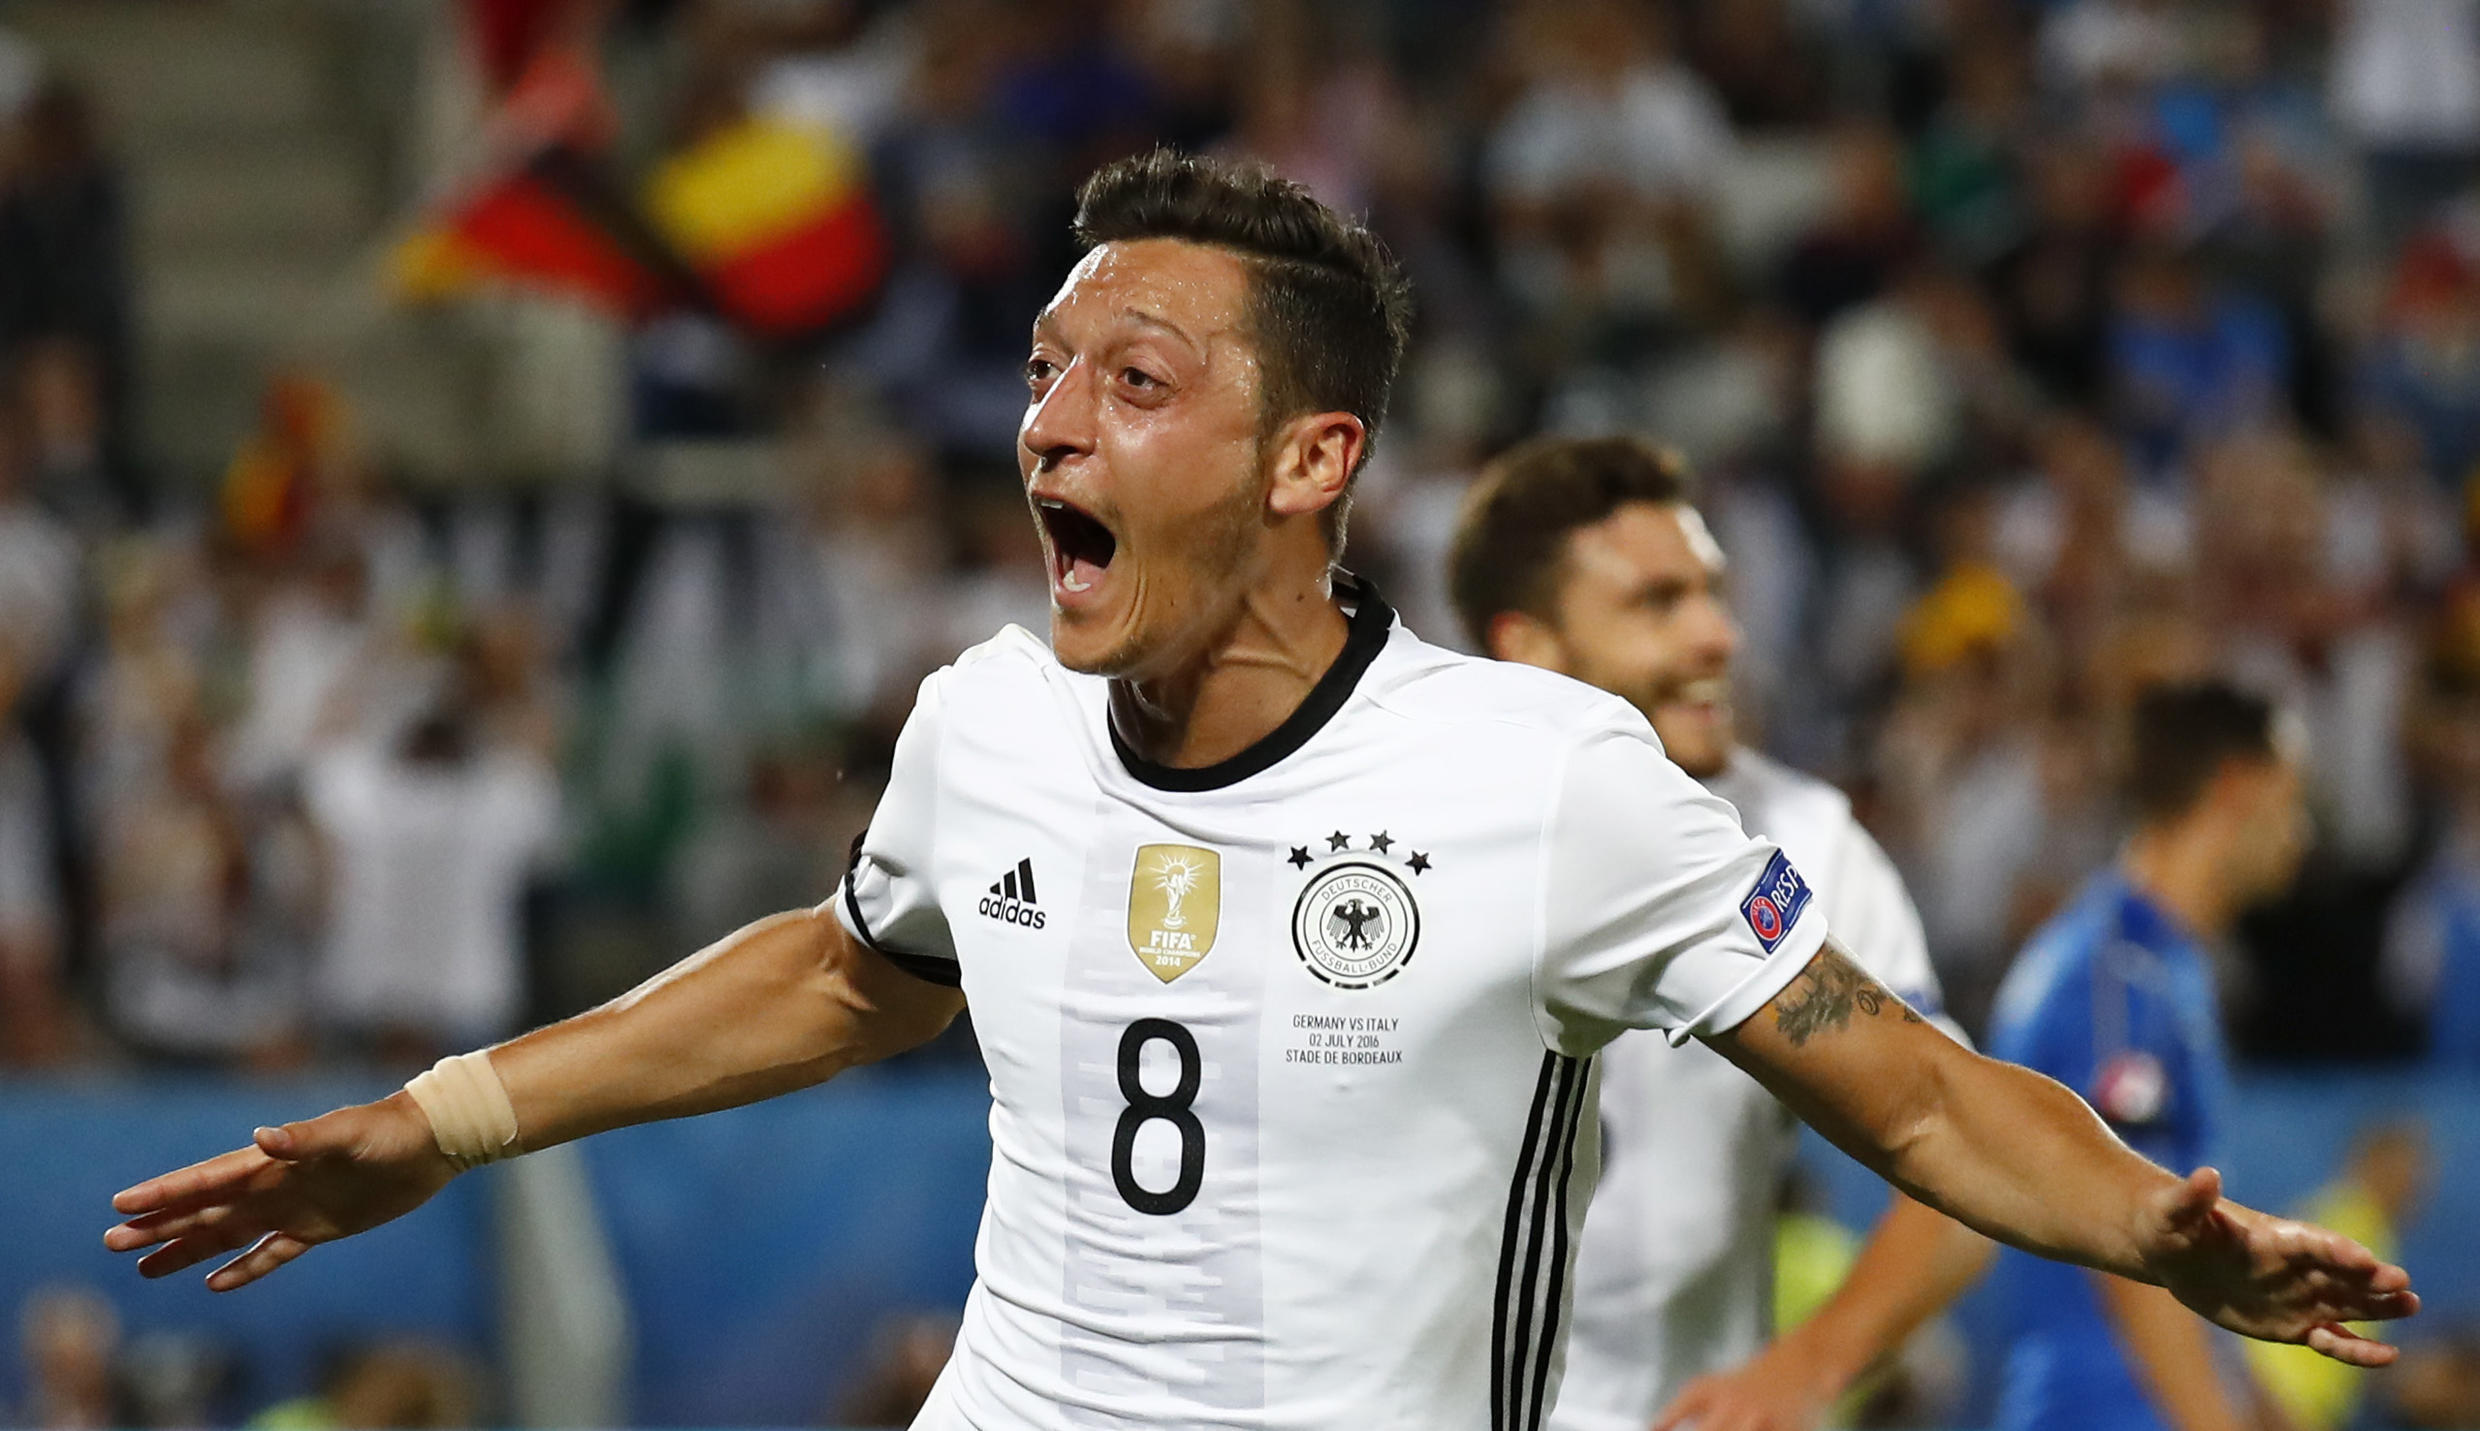 Mesut Ozil opened the scoring for Germany in the quarter-final against Italy in Bordeaux.